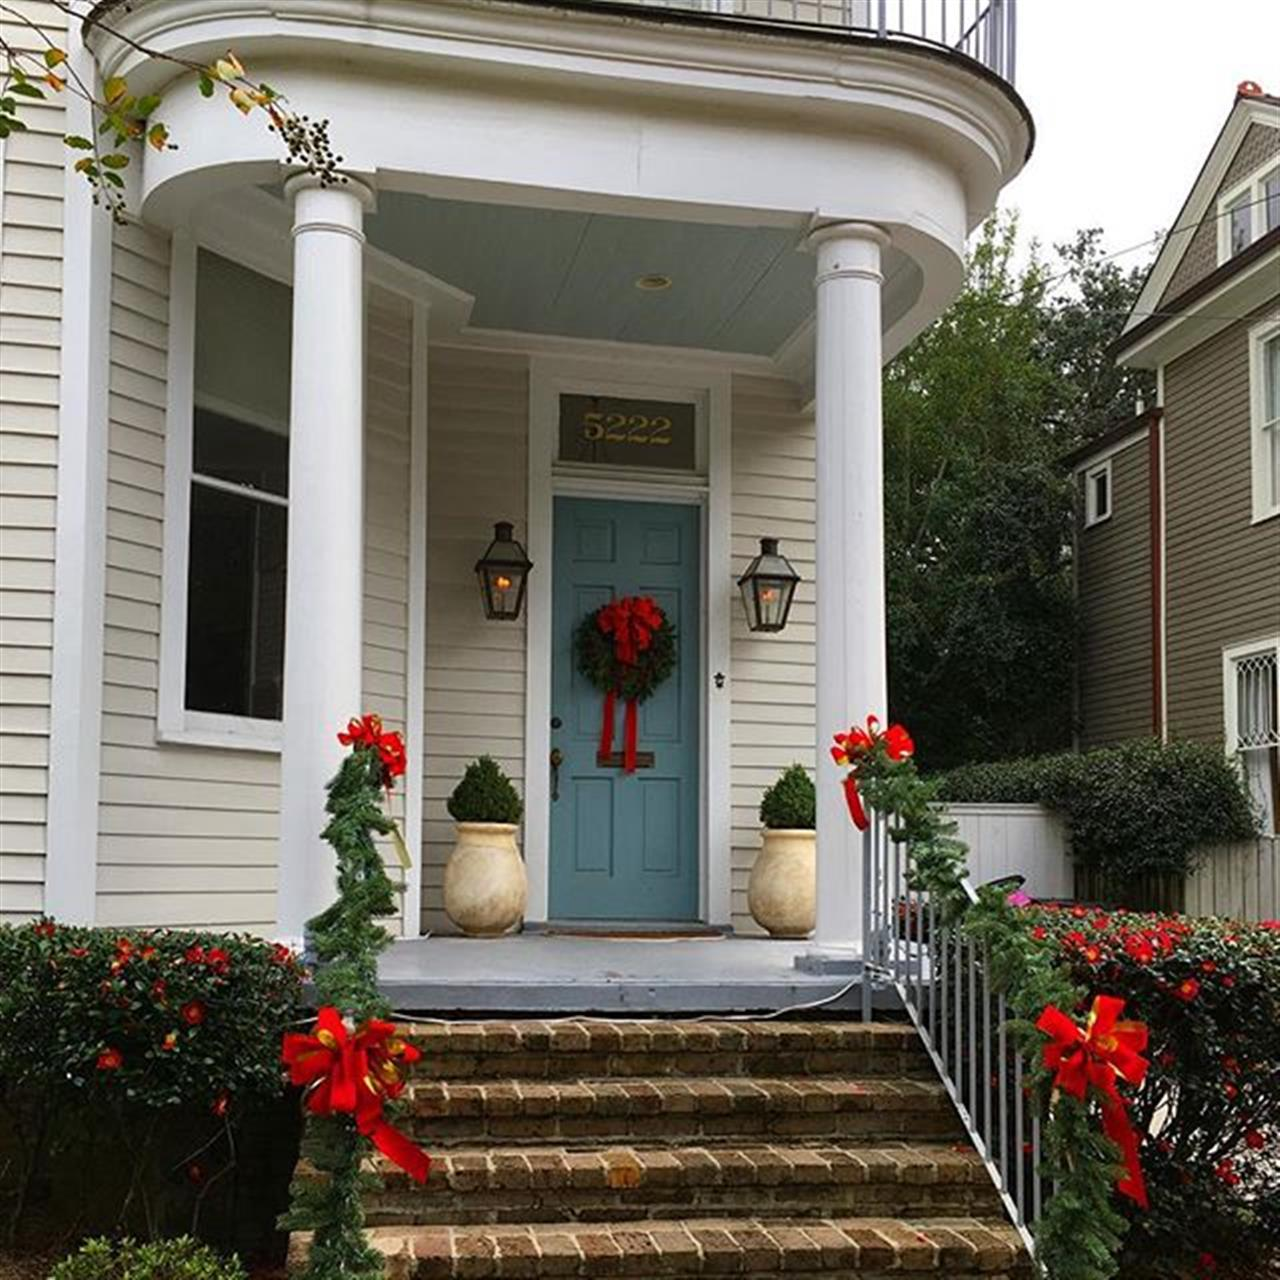 Houses in #Nola are always inviting you to come home for the #holidays!